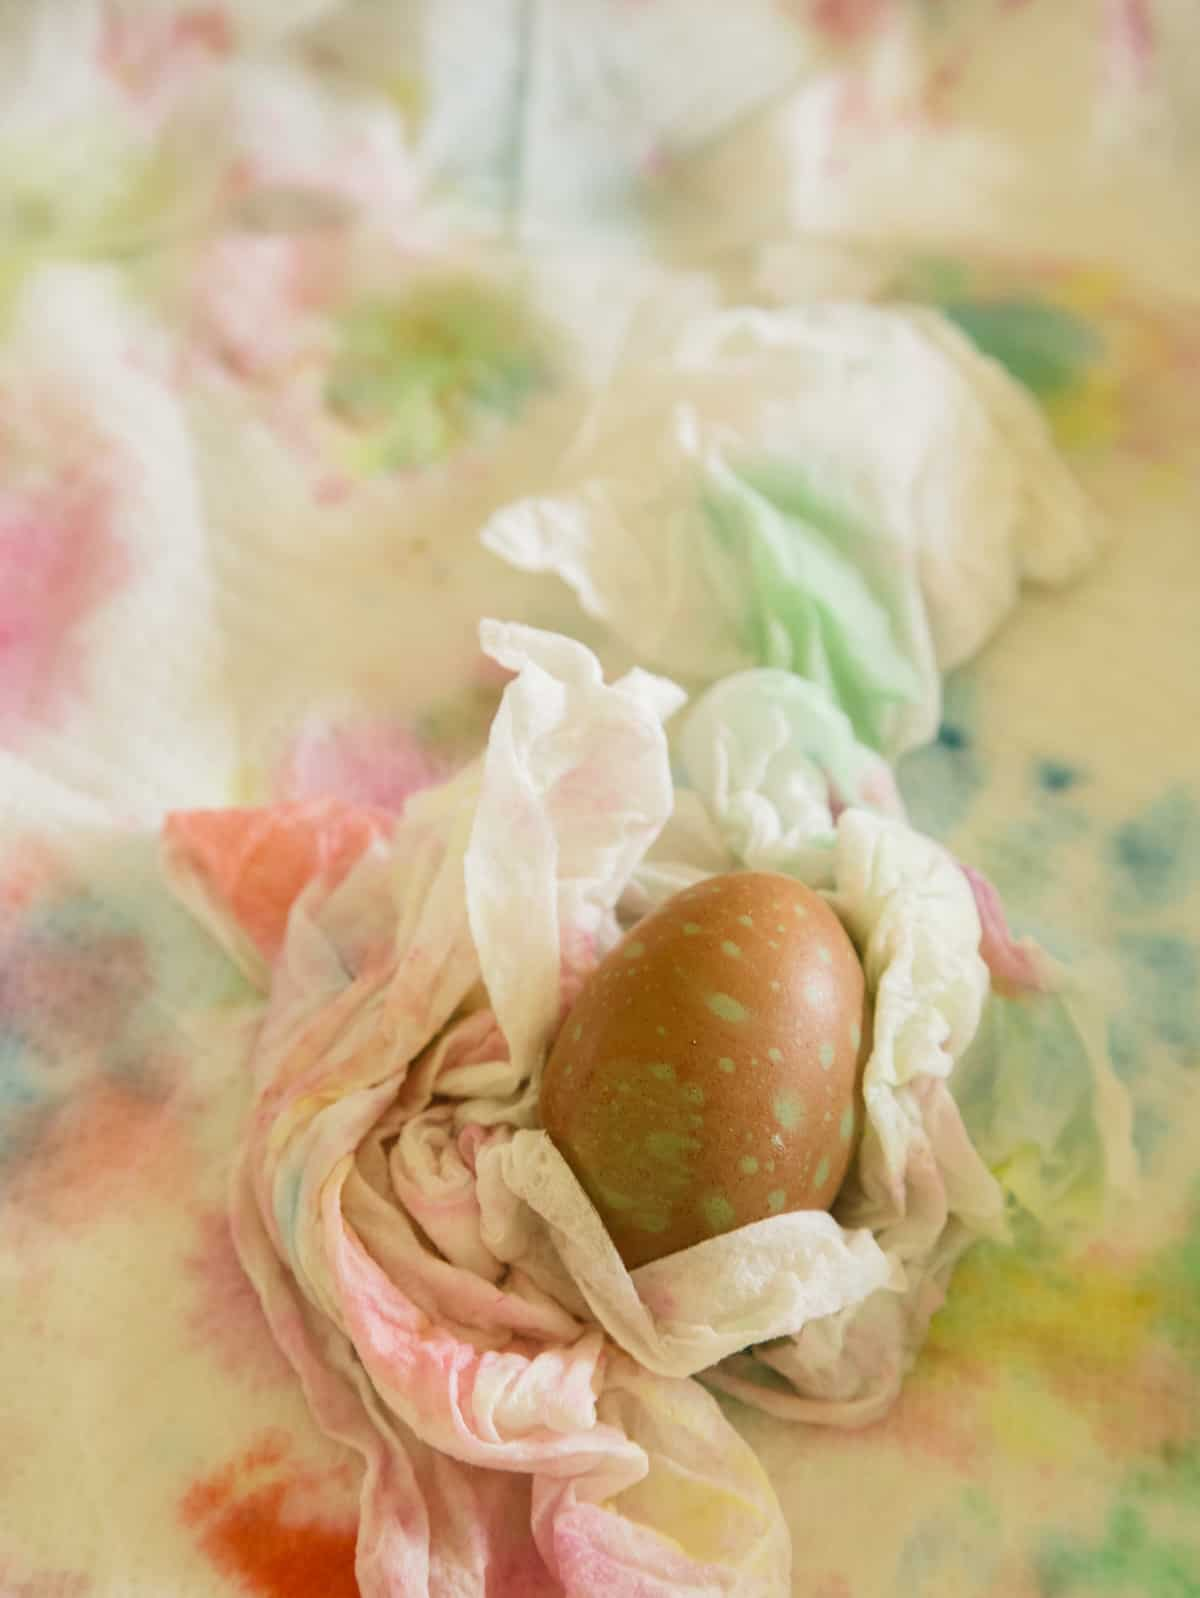 A close up of a finished spotted dyed egg resting in a paper towel.